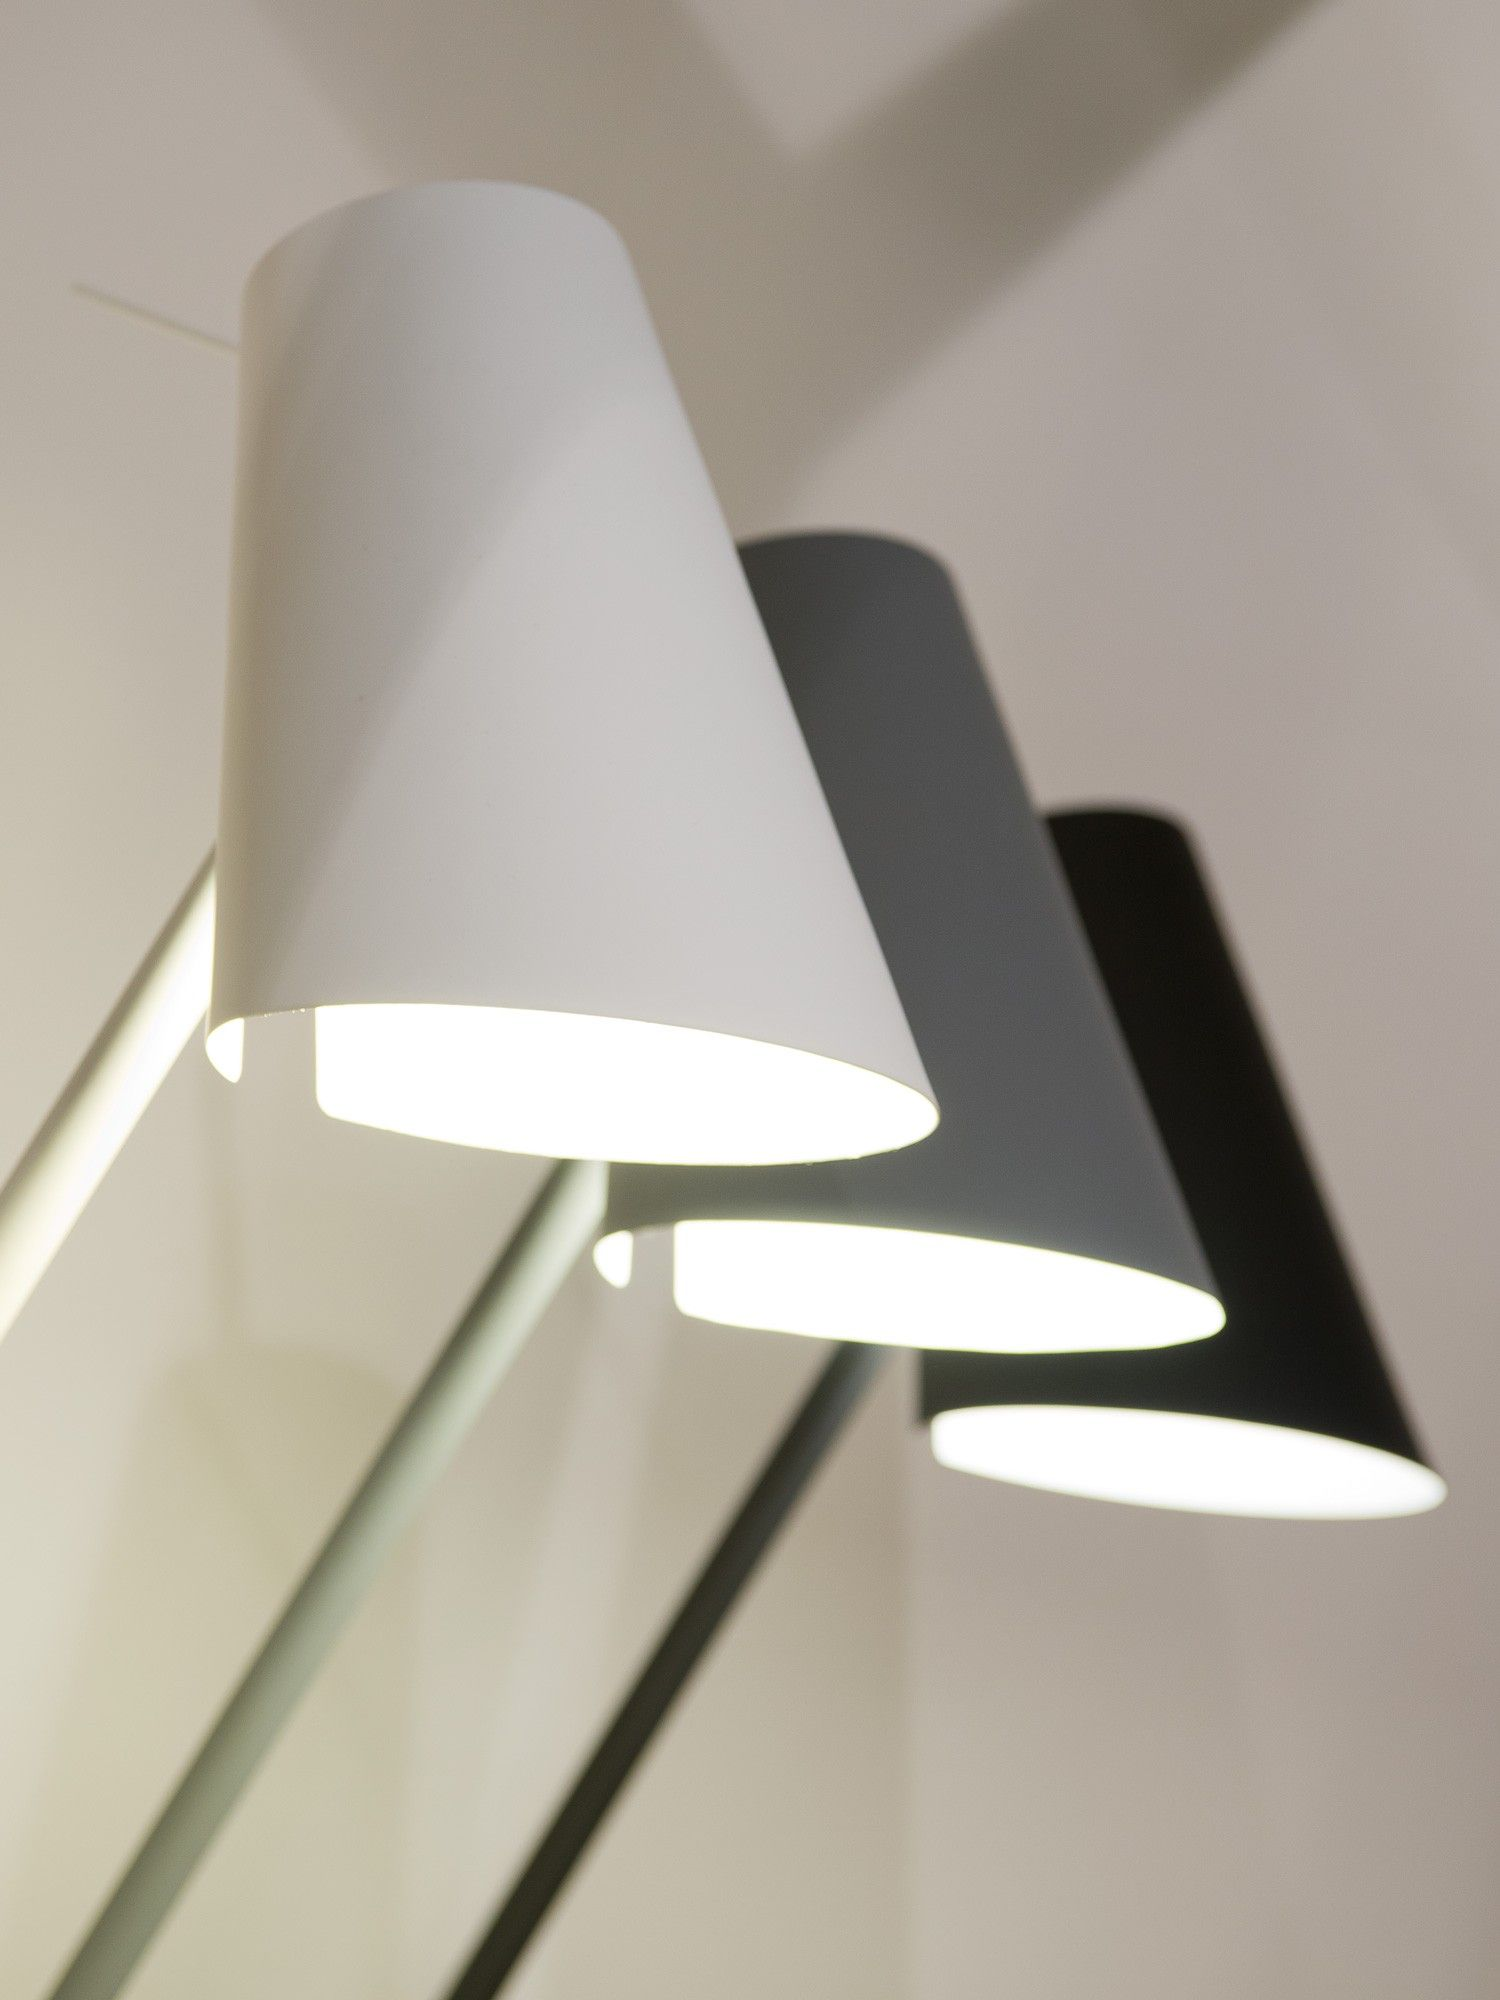 With its simple and sleek design the Cardiff Floor Lamp by